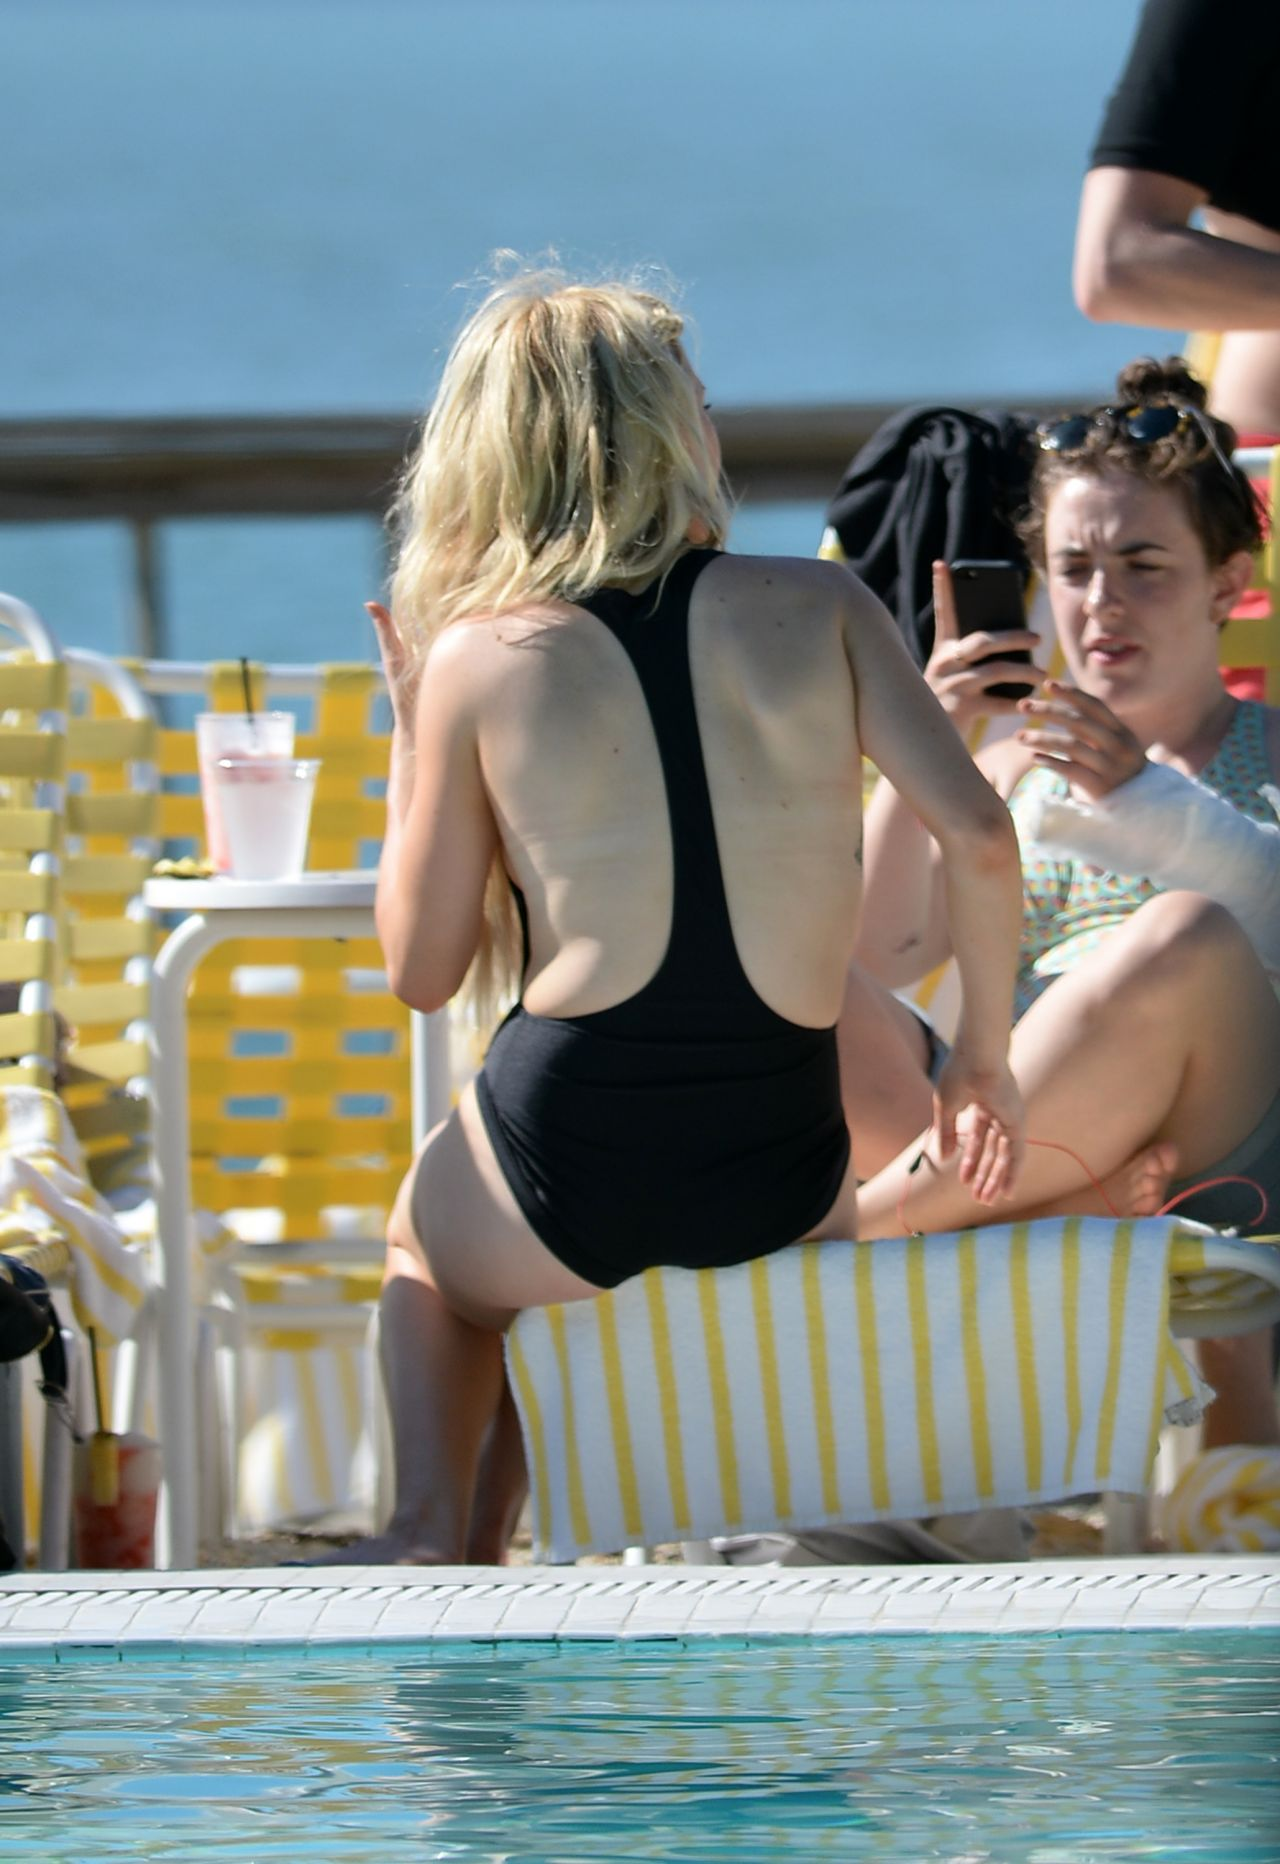 Ellie Goulding In A Bikini And Swimsuit On A Yacht In